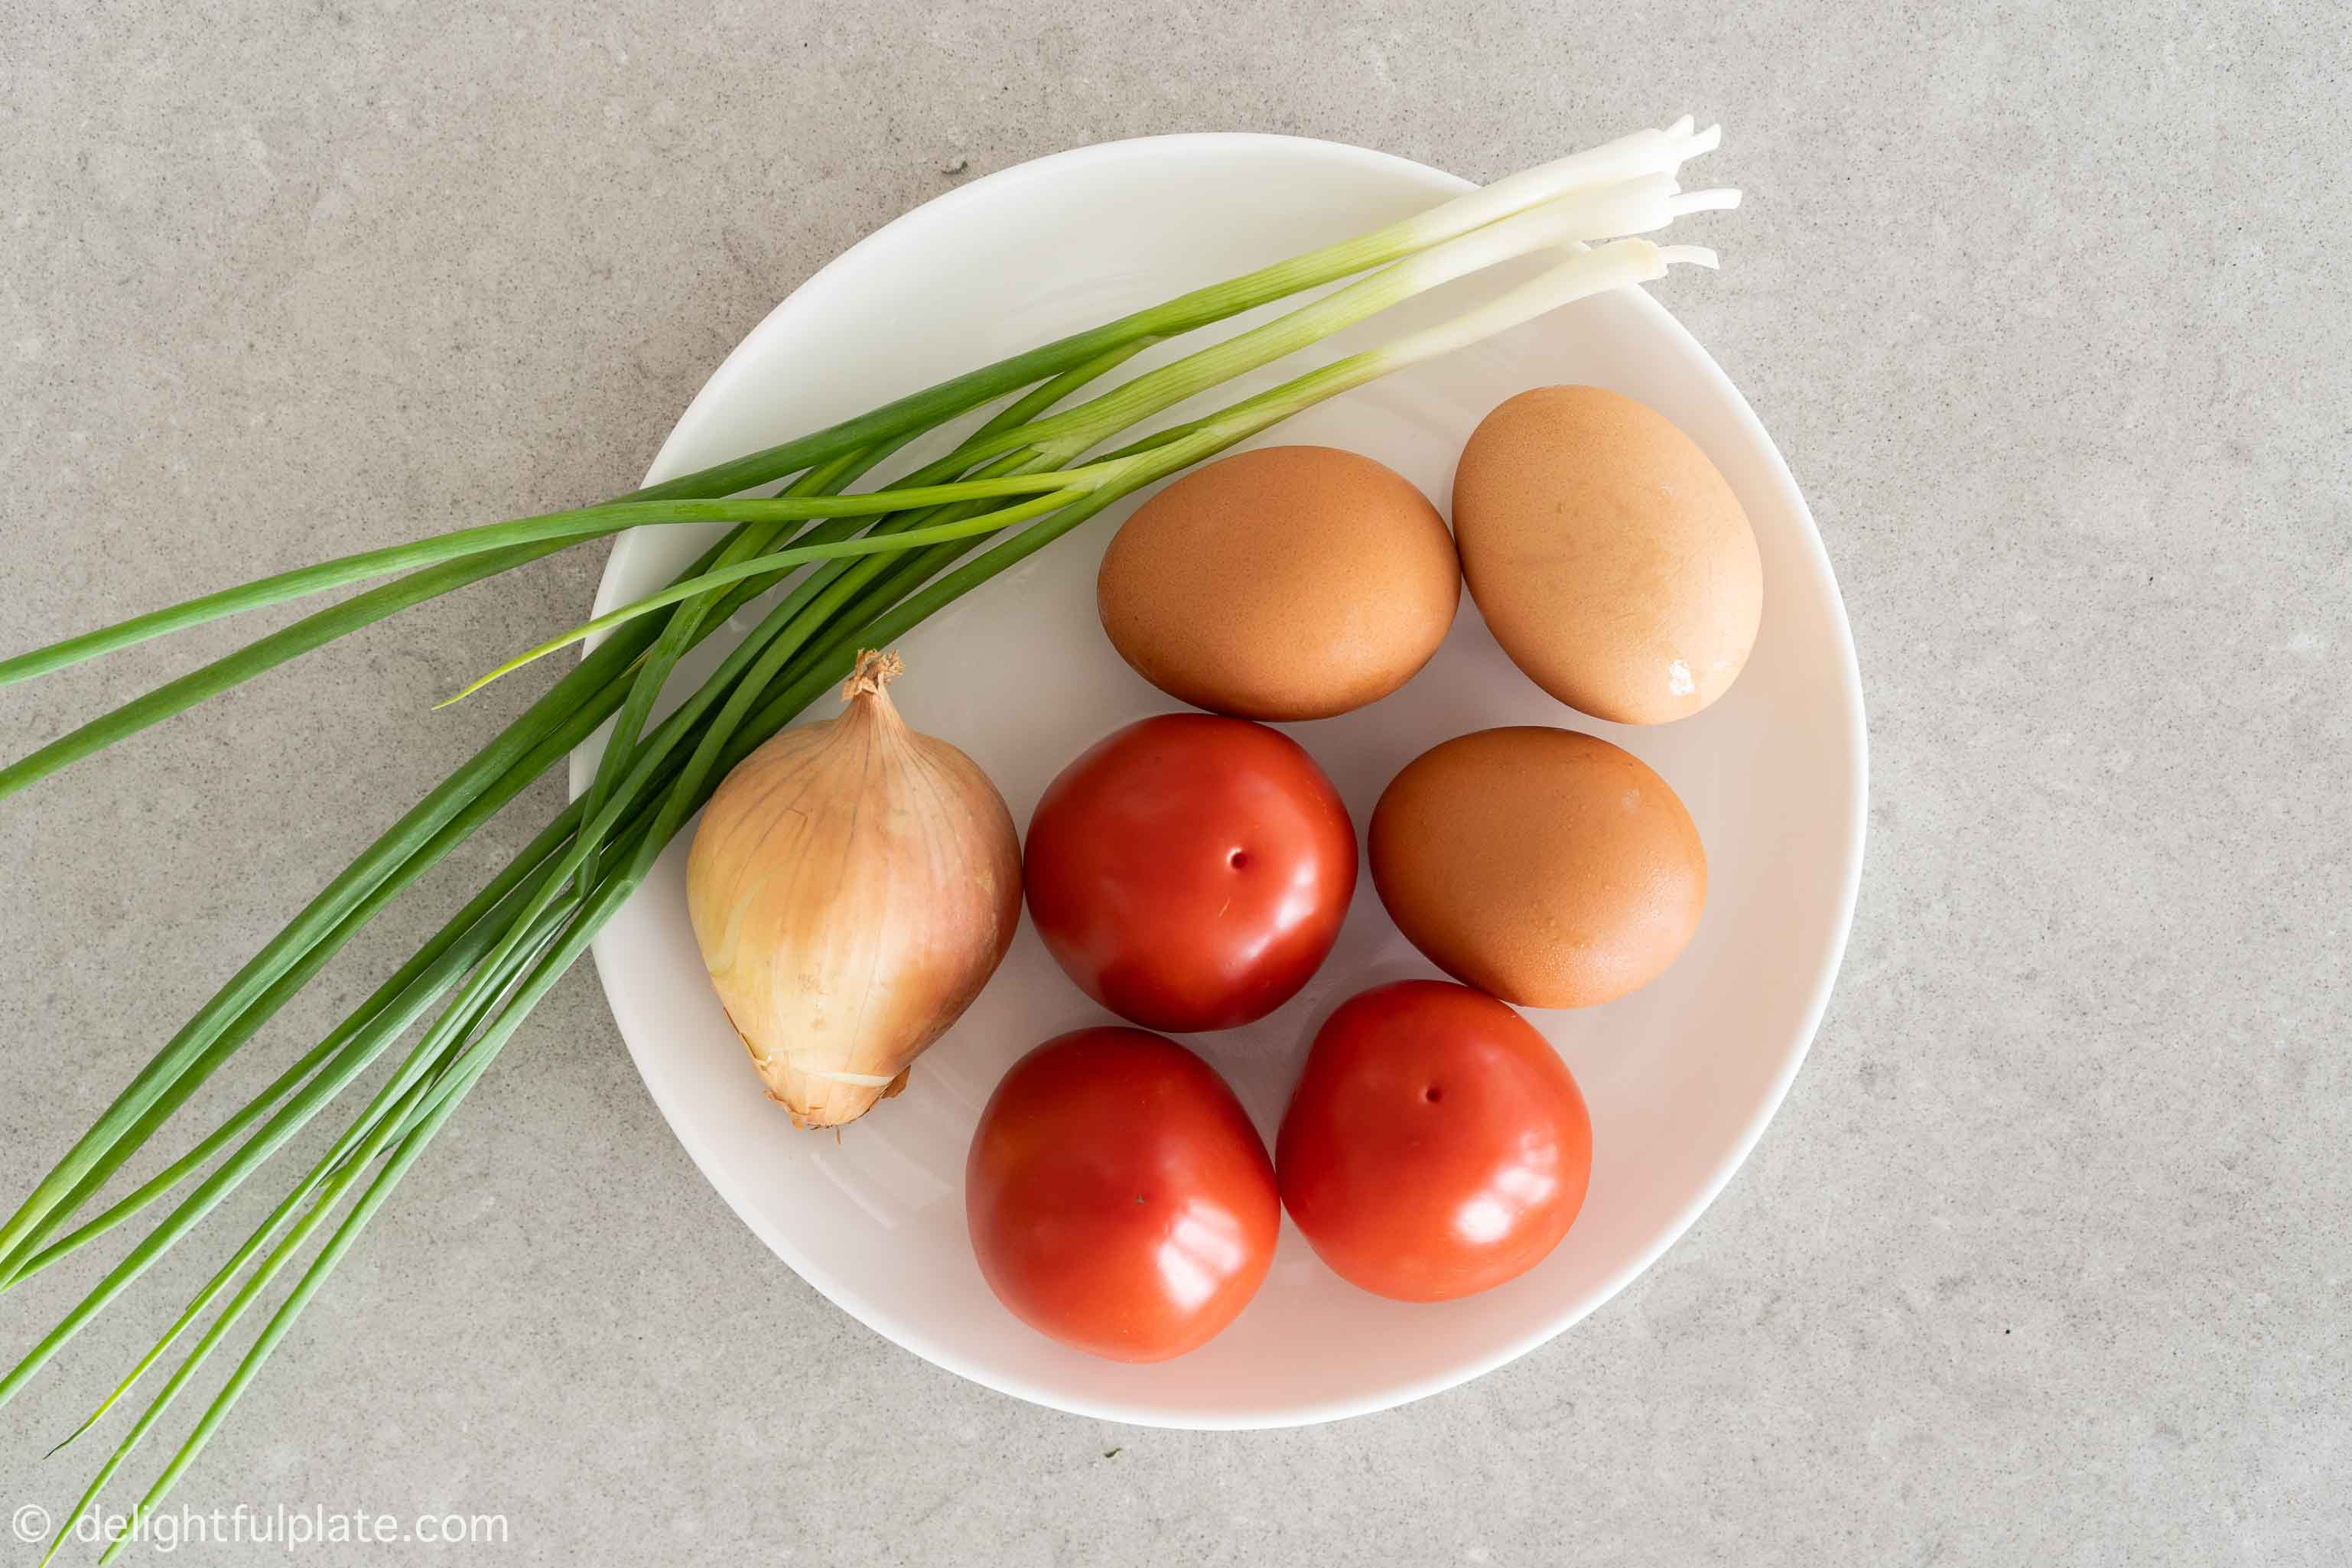 a plate with eggs, tomatoes, onions and scallions